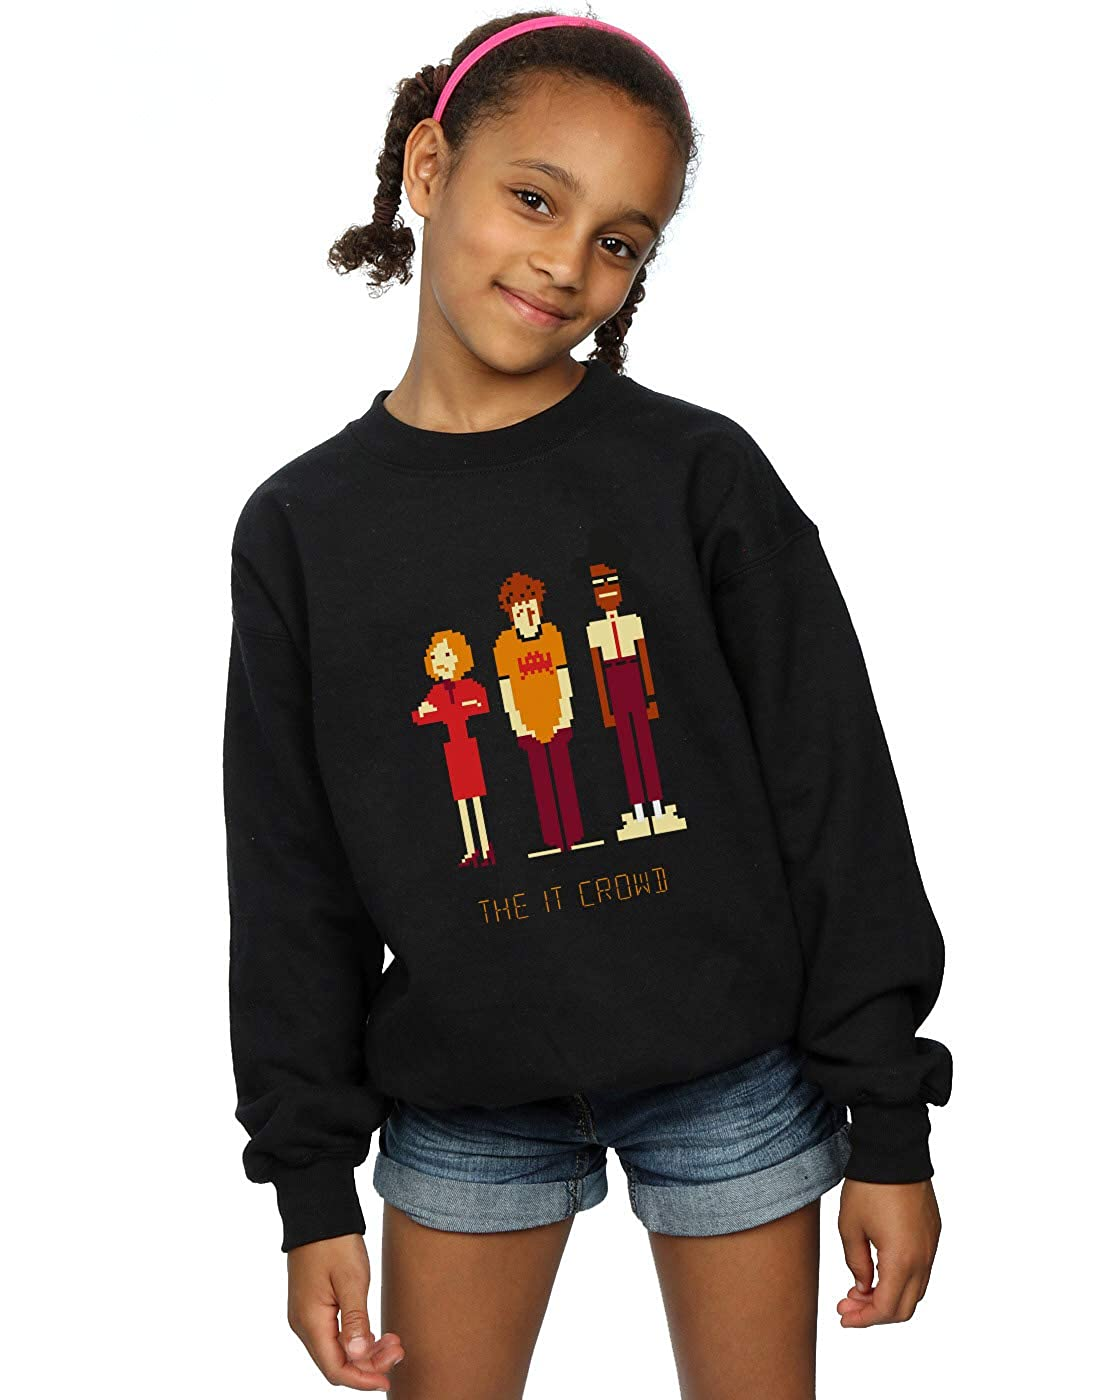 The IT Crowd Girls Pixel Crew Sweatshirt